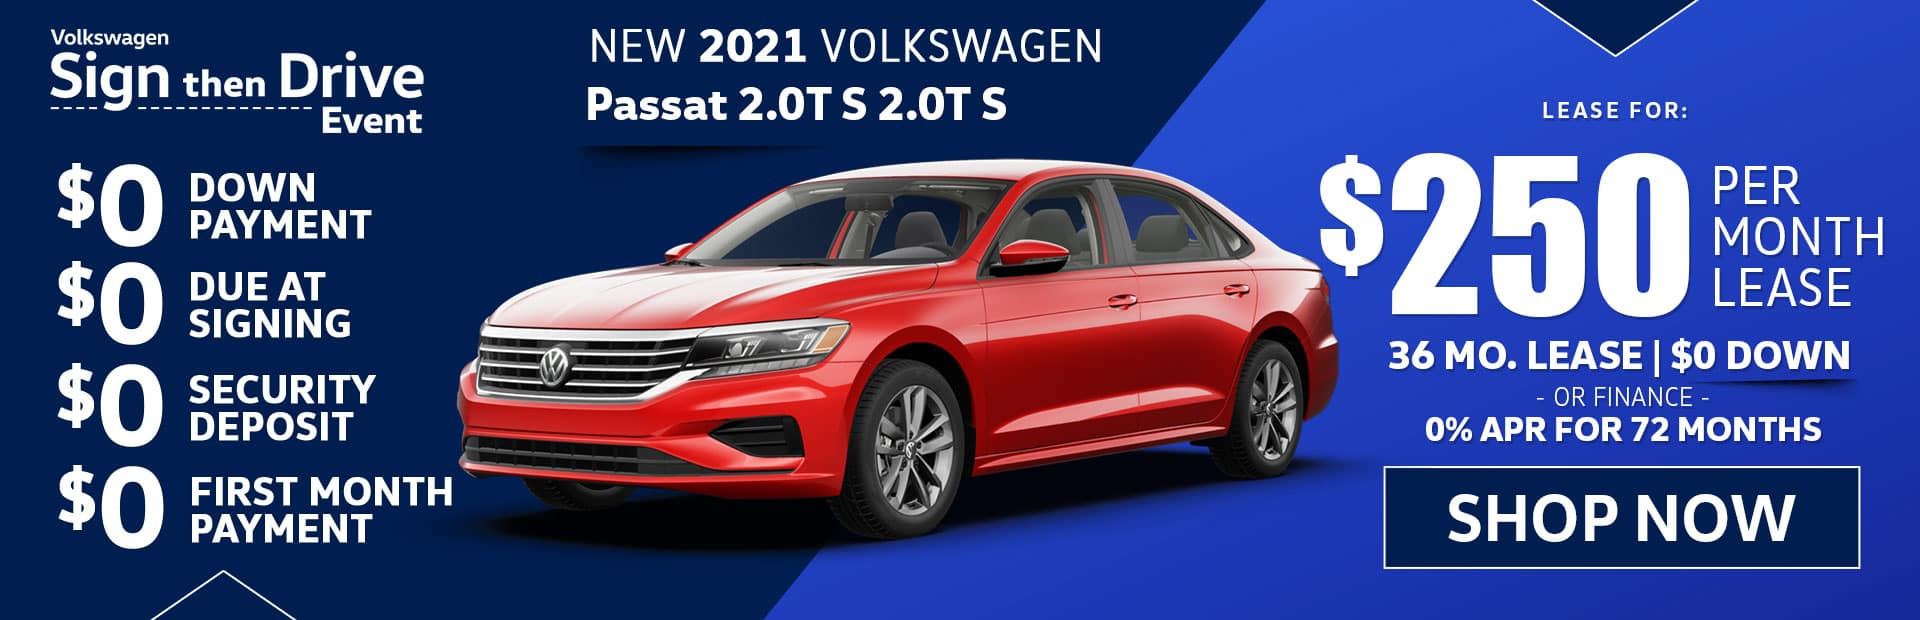 new vw passat s lease special in los angeles in california sign then drive event